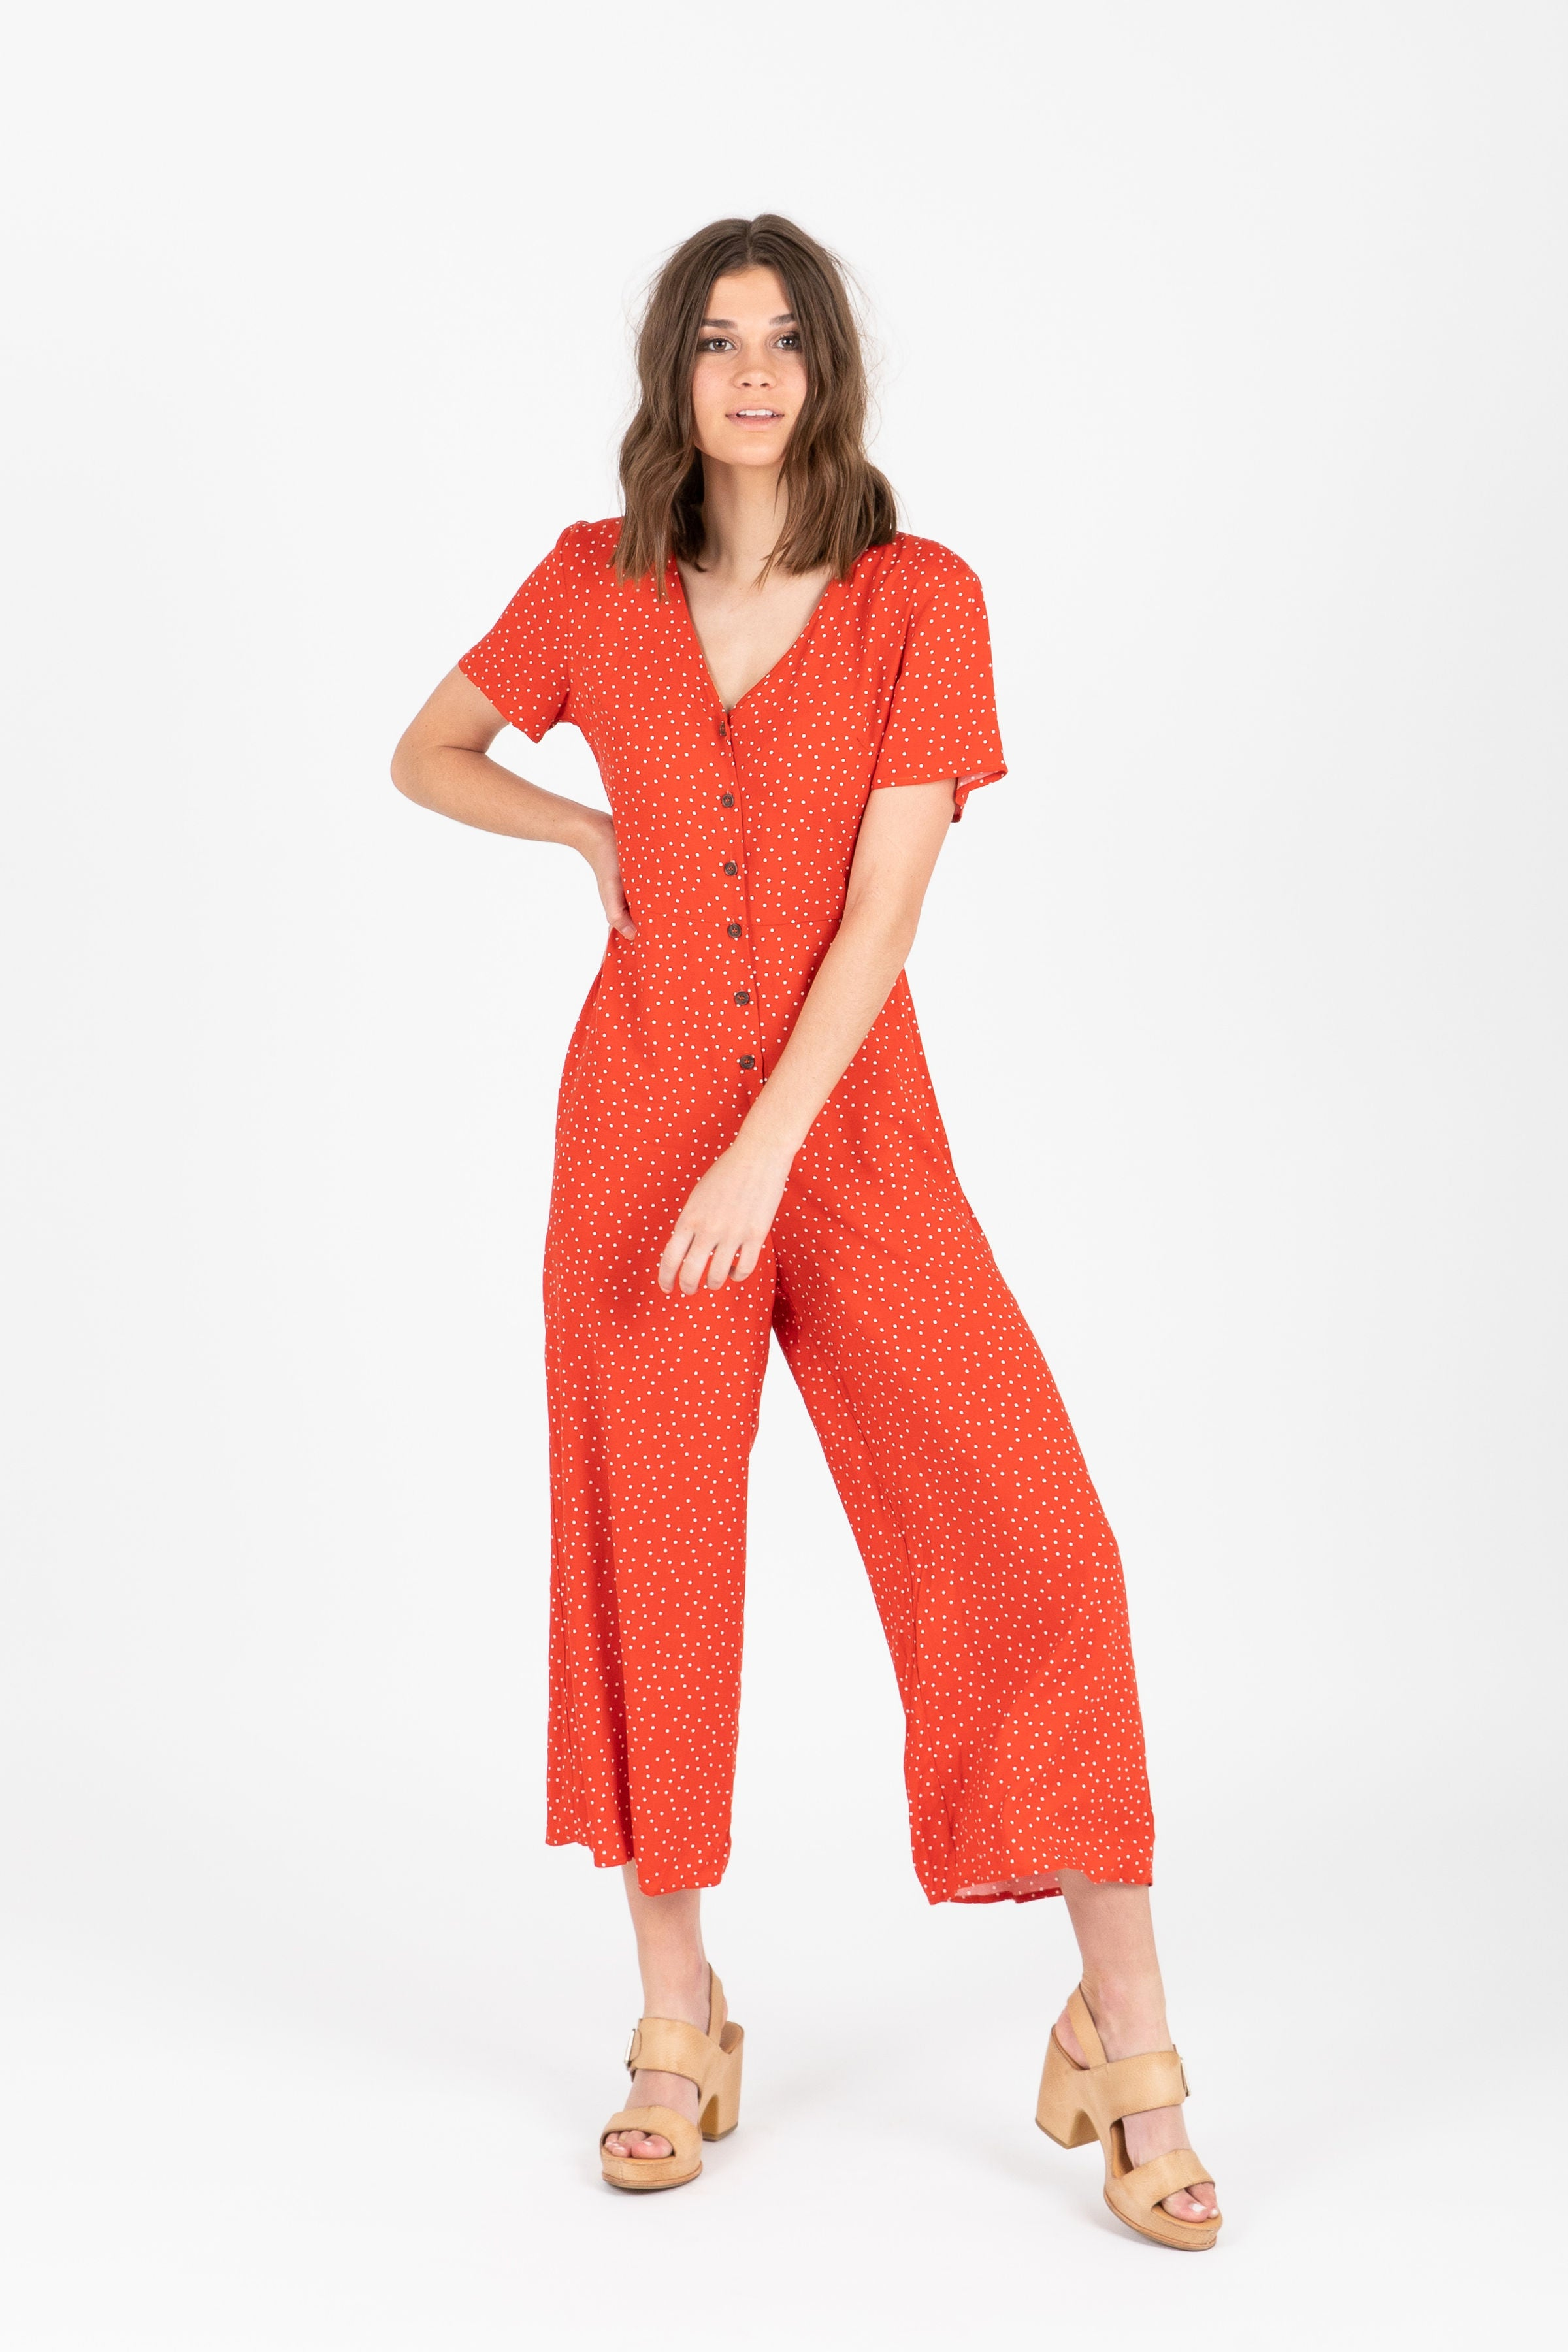 The Pony Dot Button Jumpsuit in Poppy